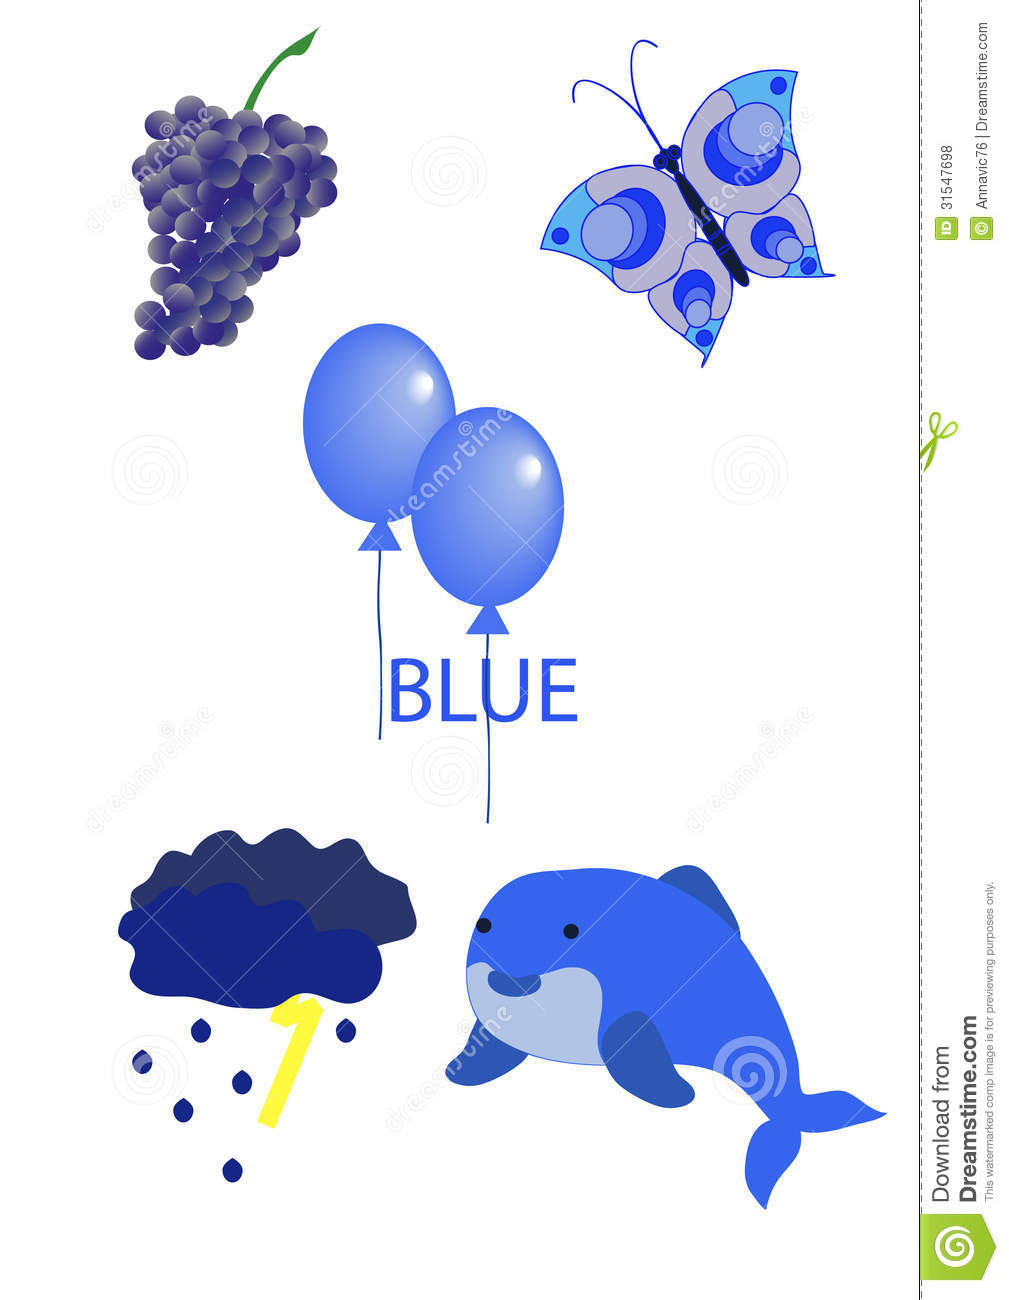 Royalty Free Stock Photos Objects Blue Color Live Lifeless Image31547698 on Color Learn Rain